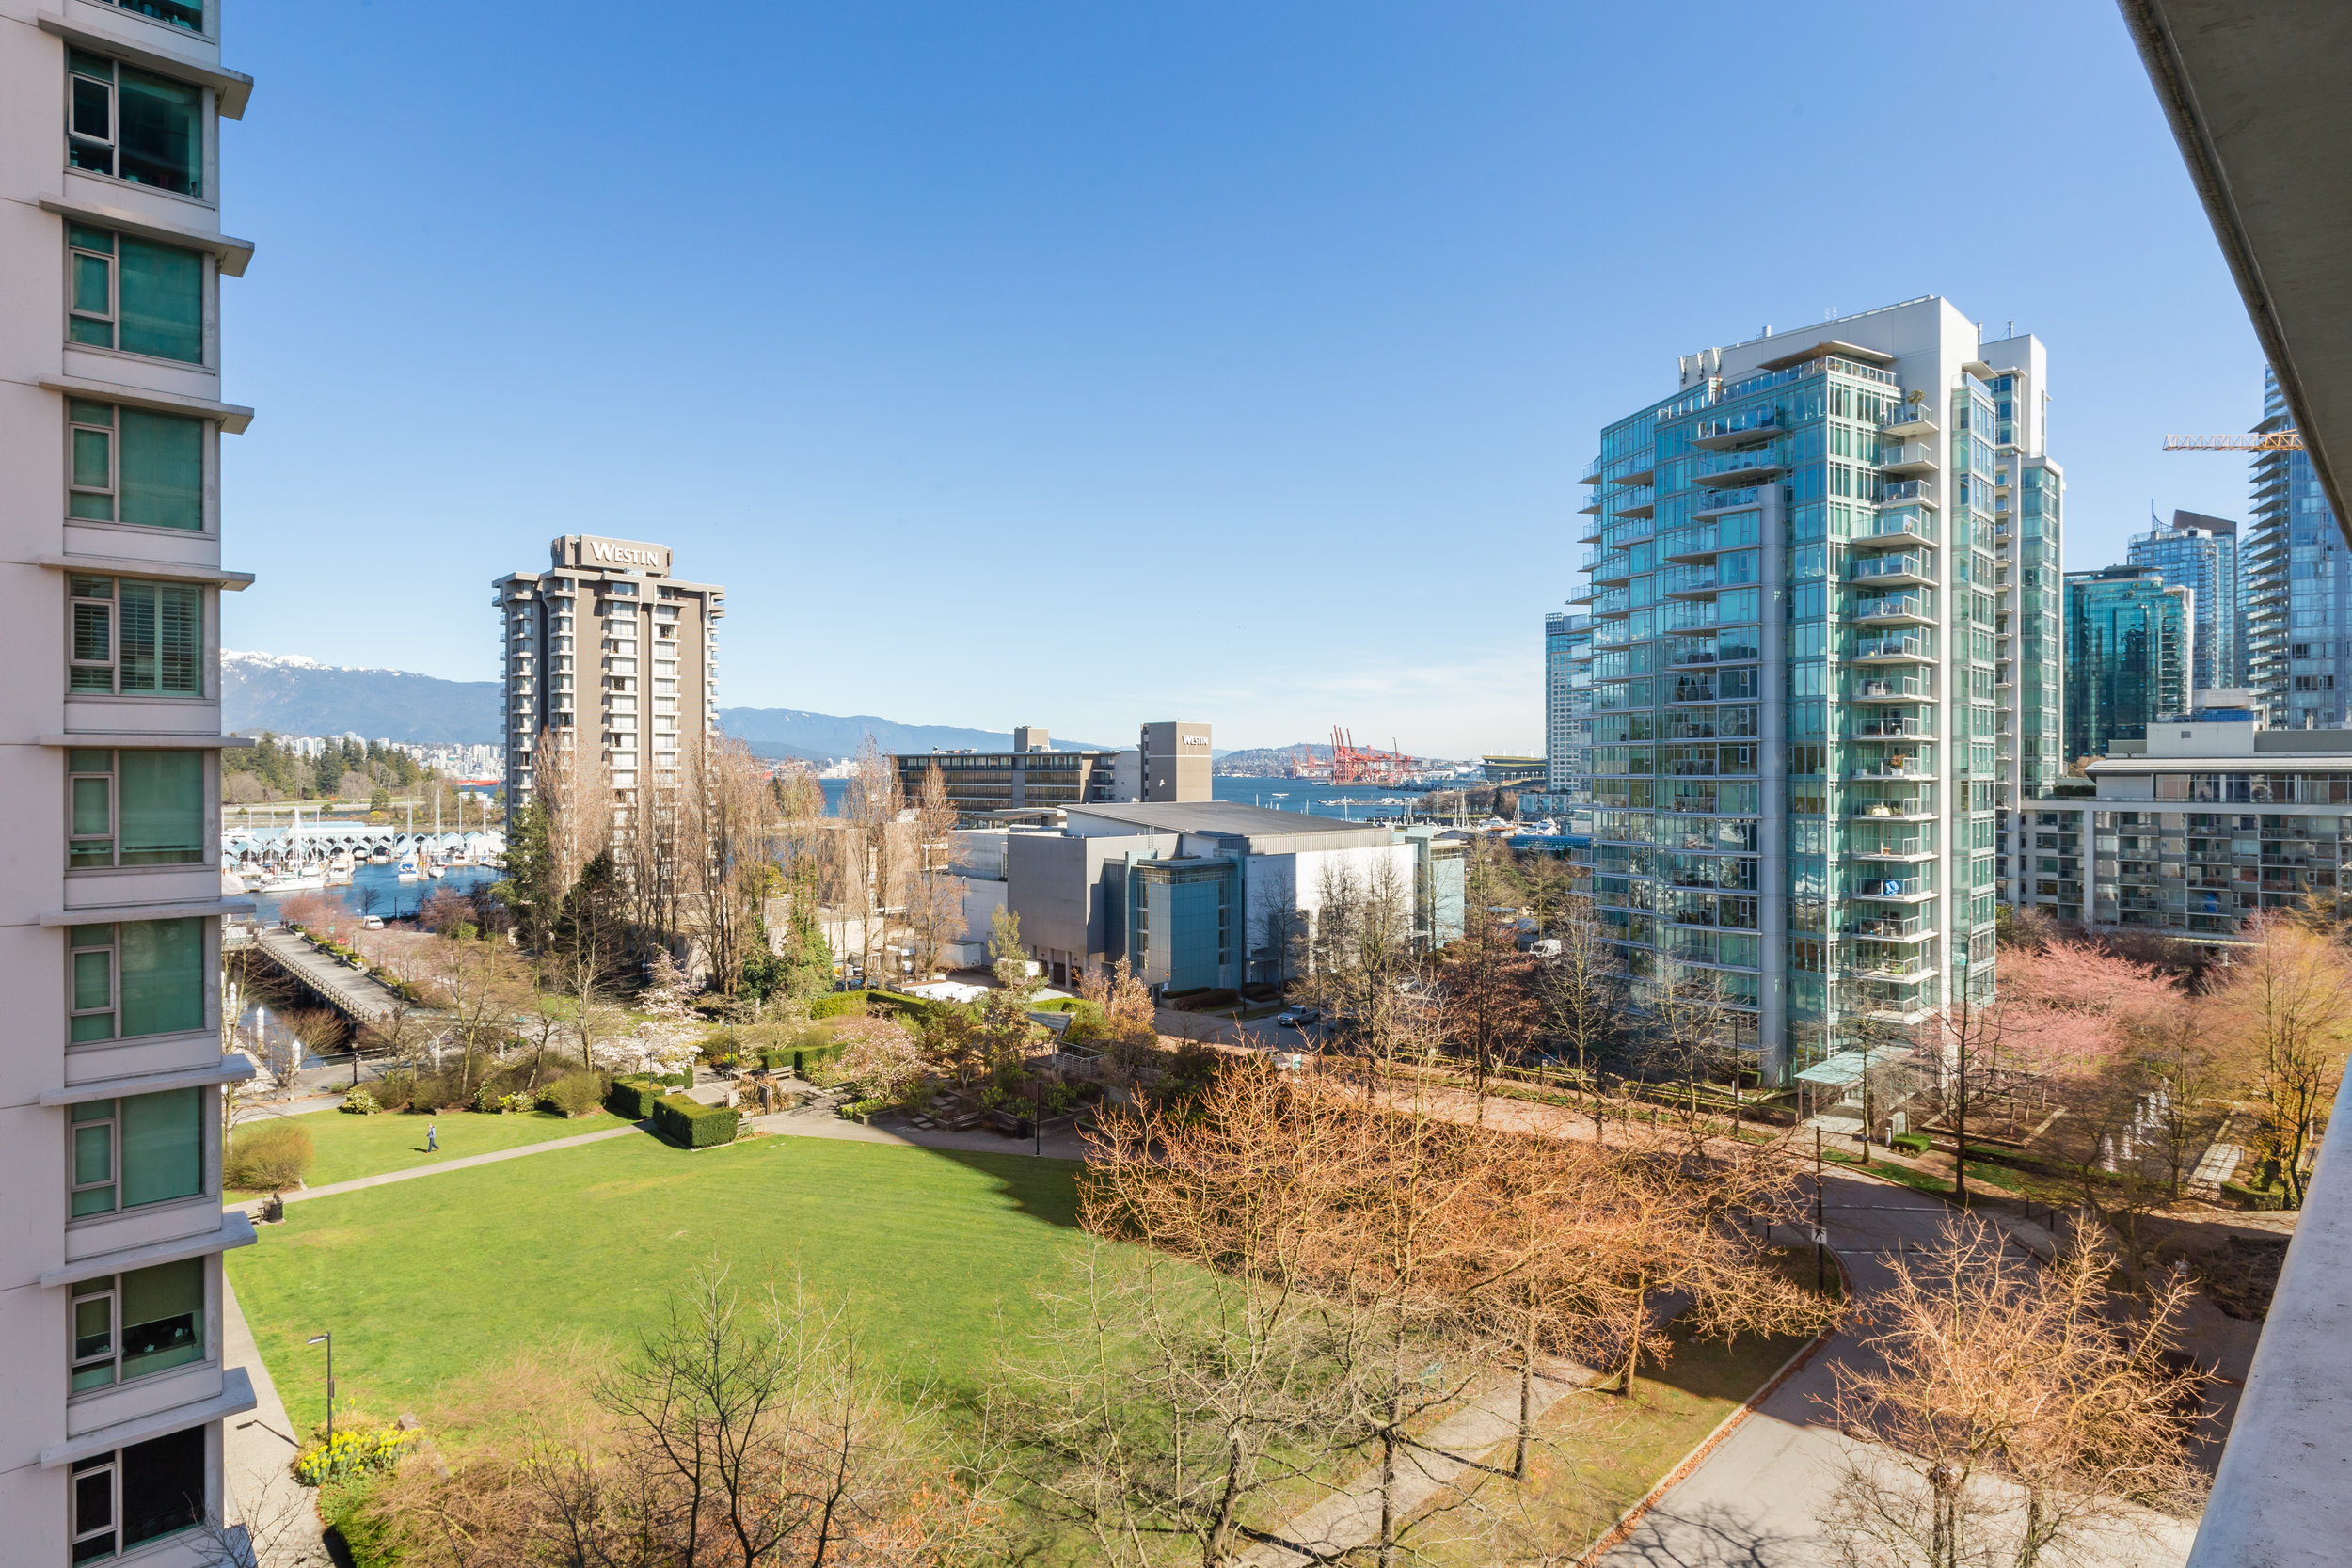 Bayshore Gardens - #702-1710 Bayshore Drive(JUST SOLD)$1,490,000 | 2 Bed + Den | 2 Bath